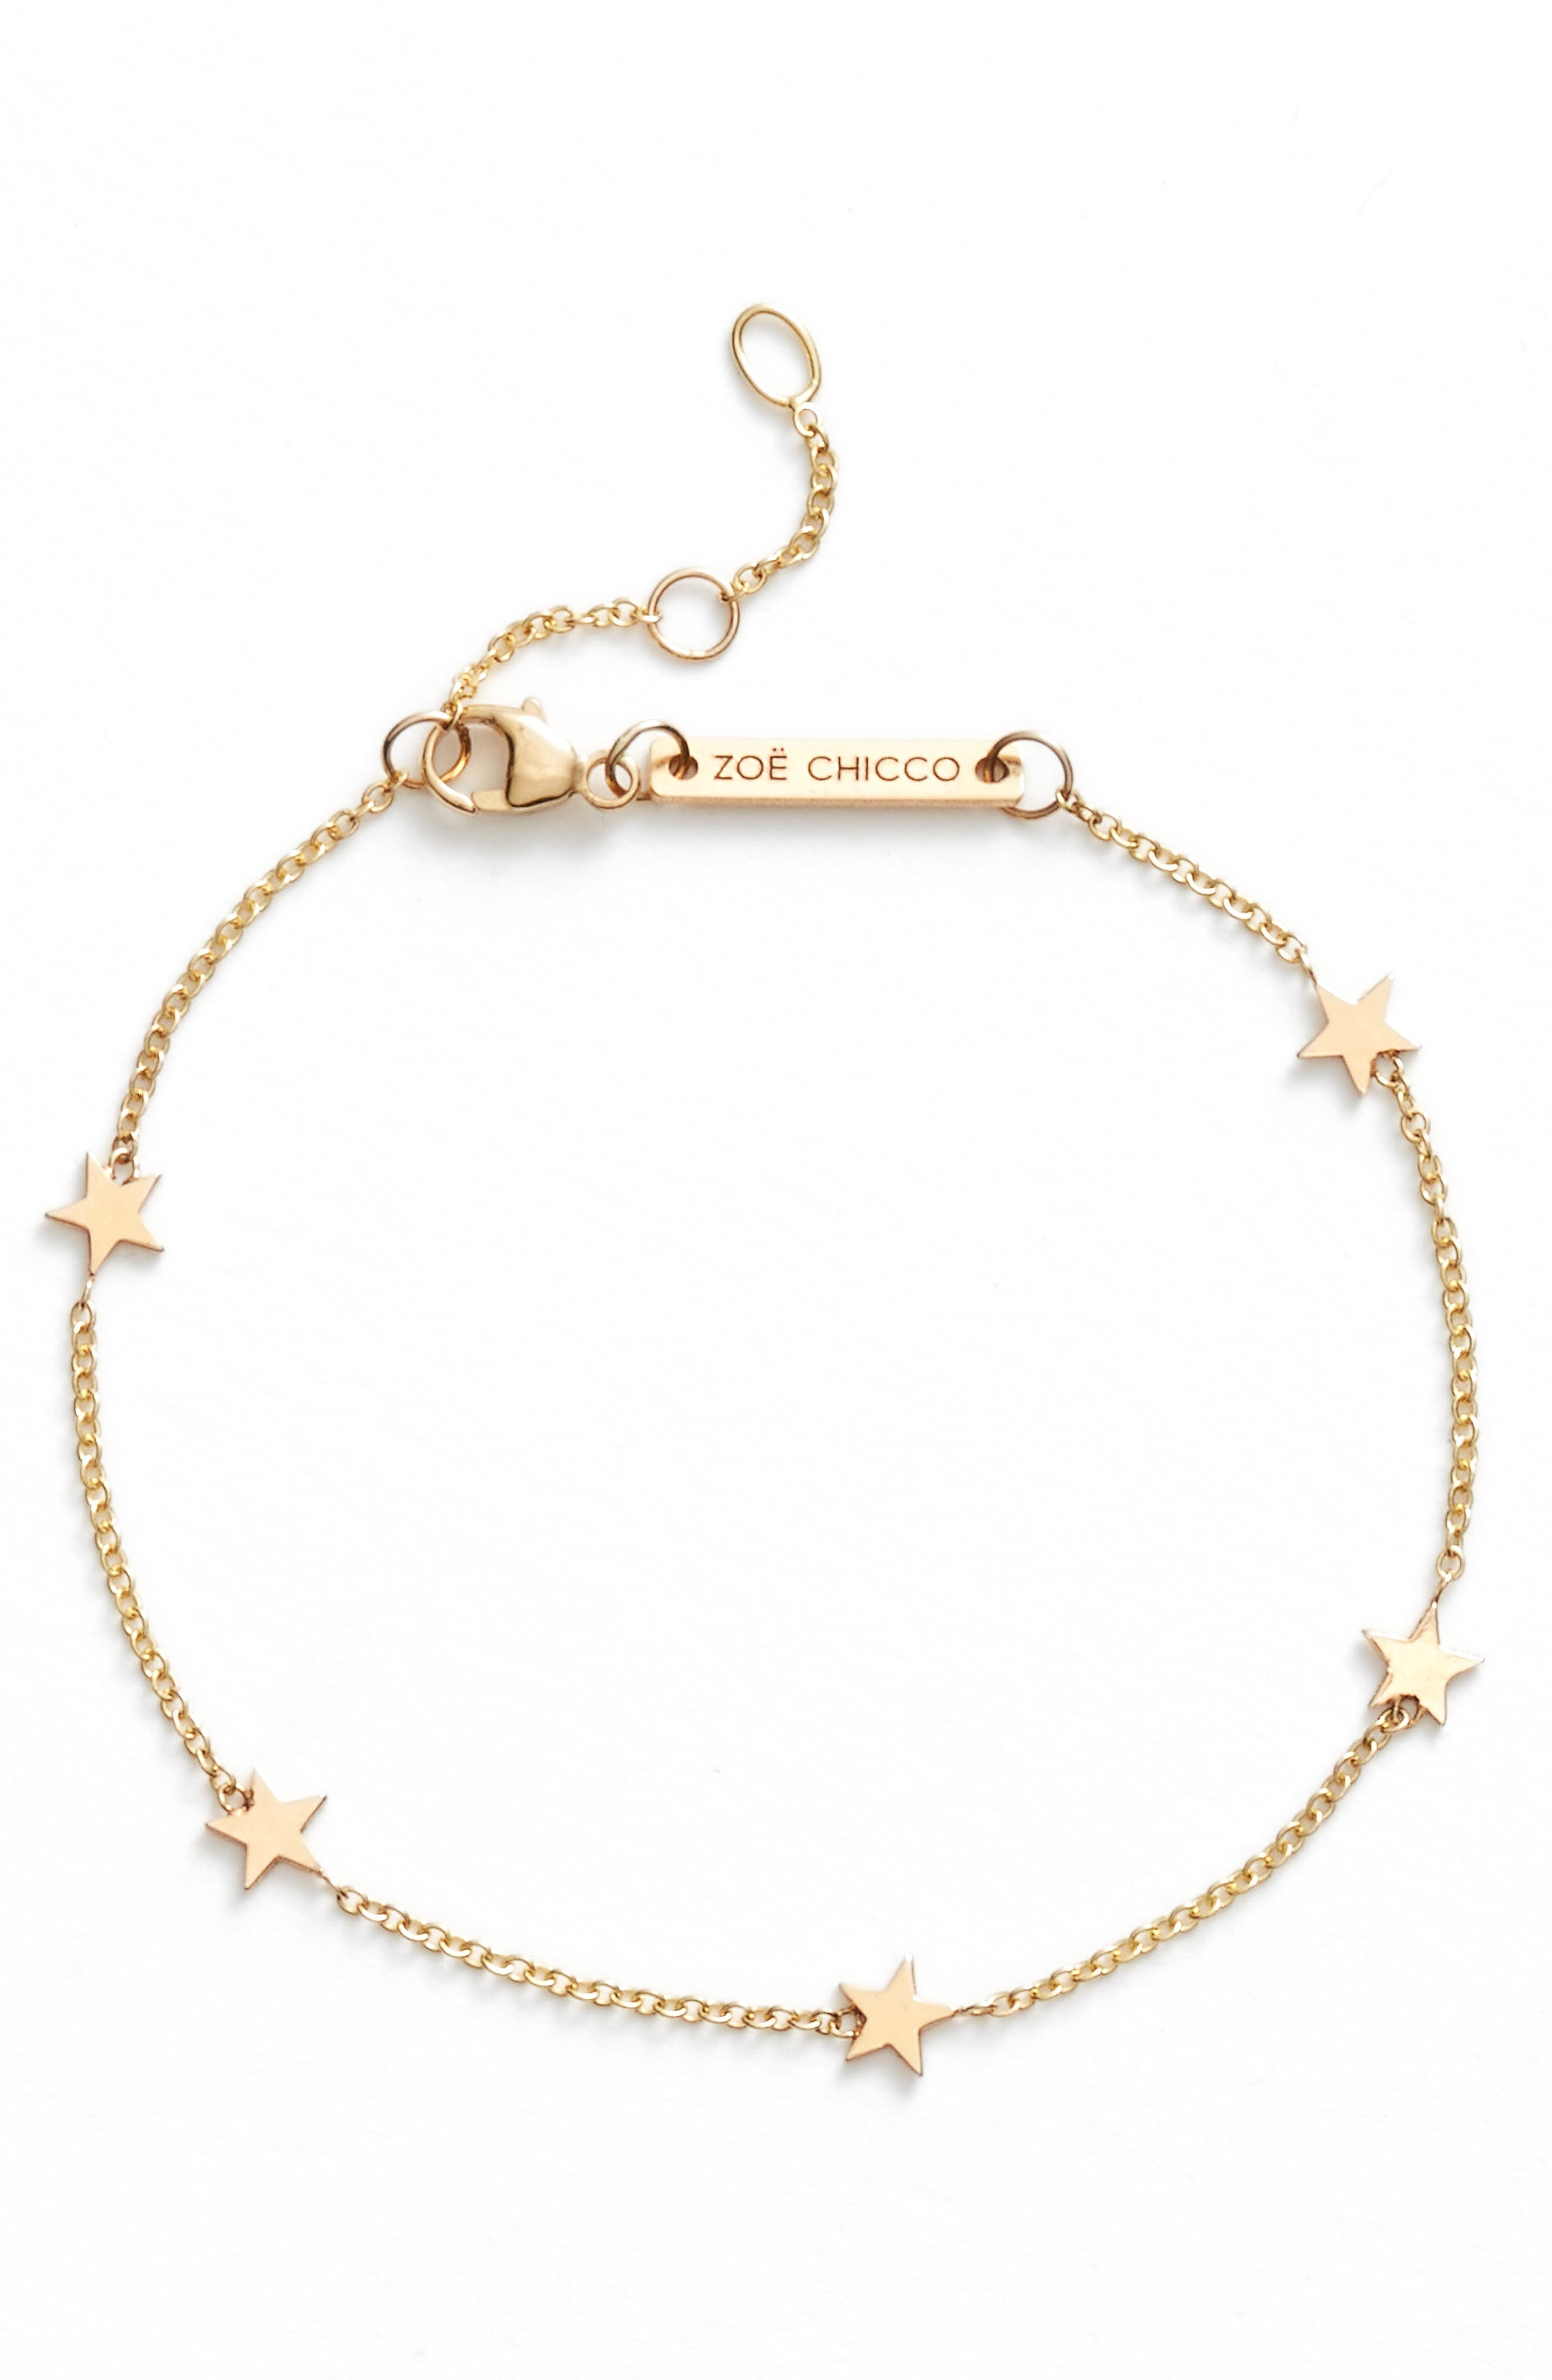 Zoë Chicco Star Station Bracelet